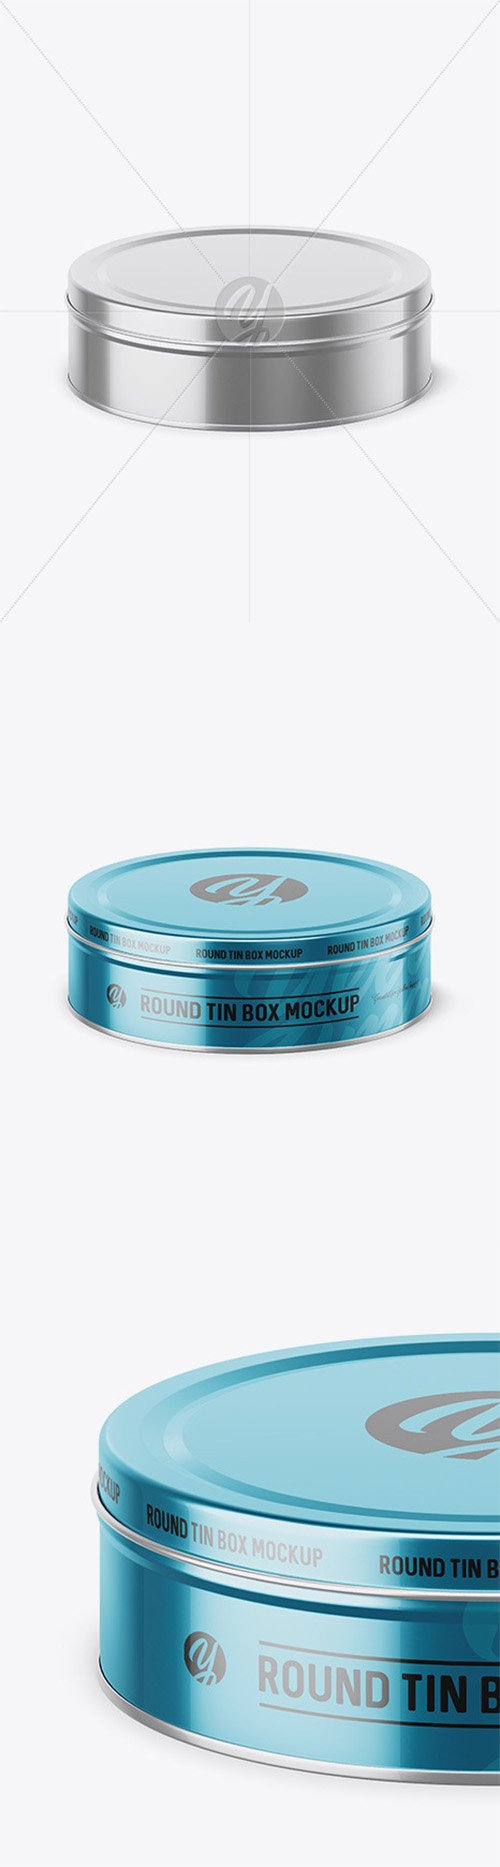 Metallic Round Tin Box Mockup (High-Angle Shot) 52444 TIF